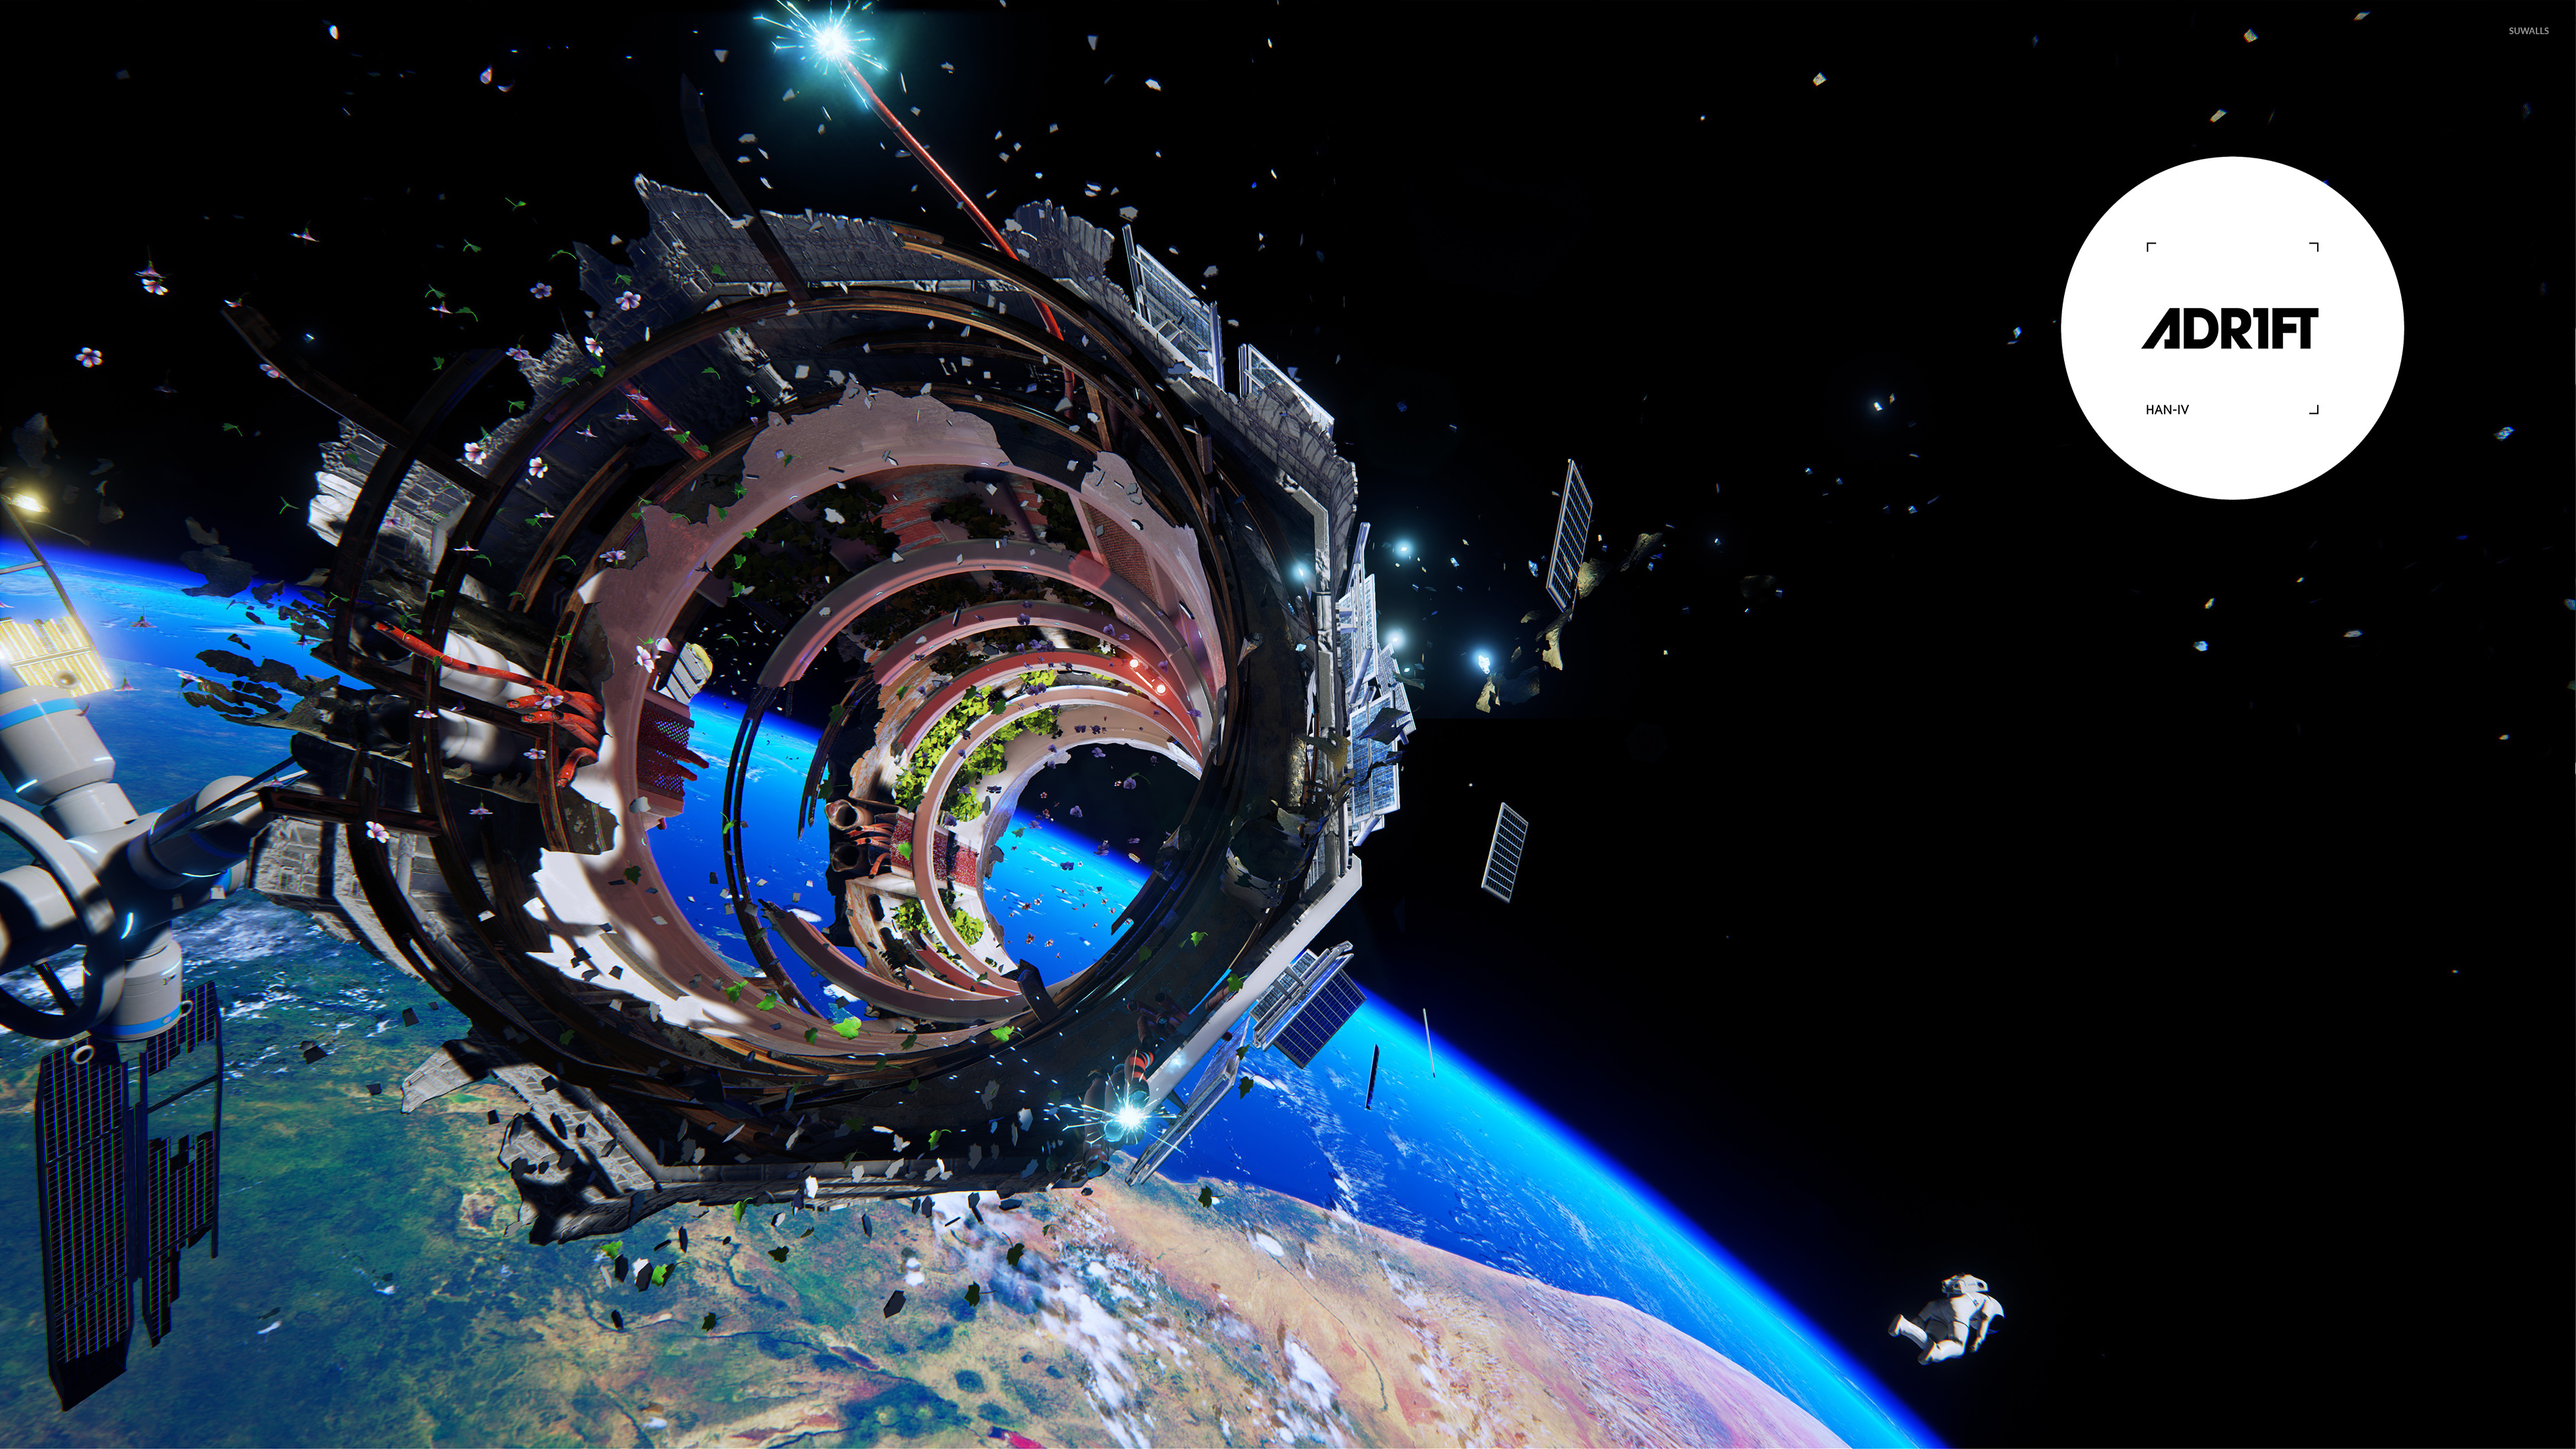 Spaceship Werck In Adr1ft Wallpaper Game Wallpapers 50840